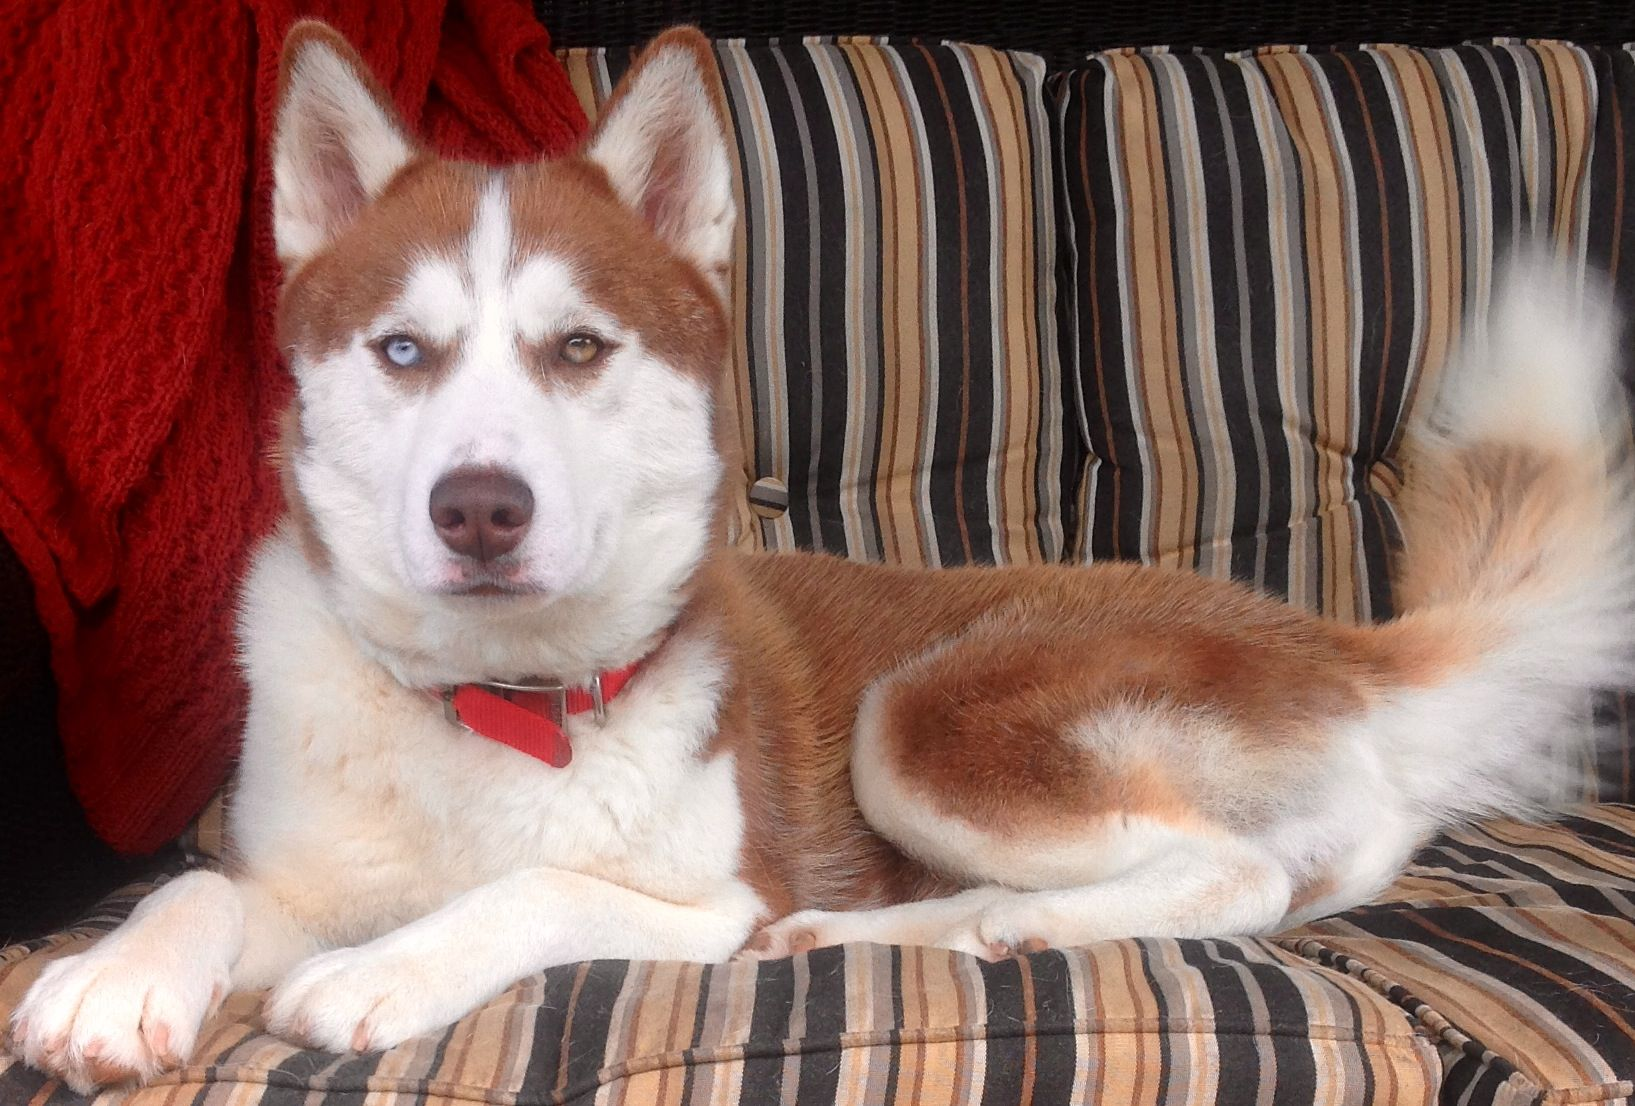 Siberian Husky Rescue Of Fl Has Been Notified That A Red And